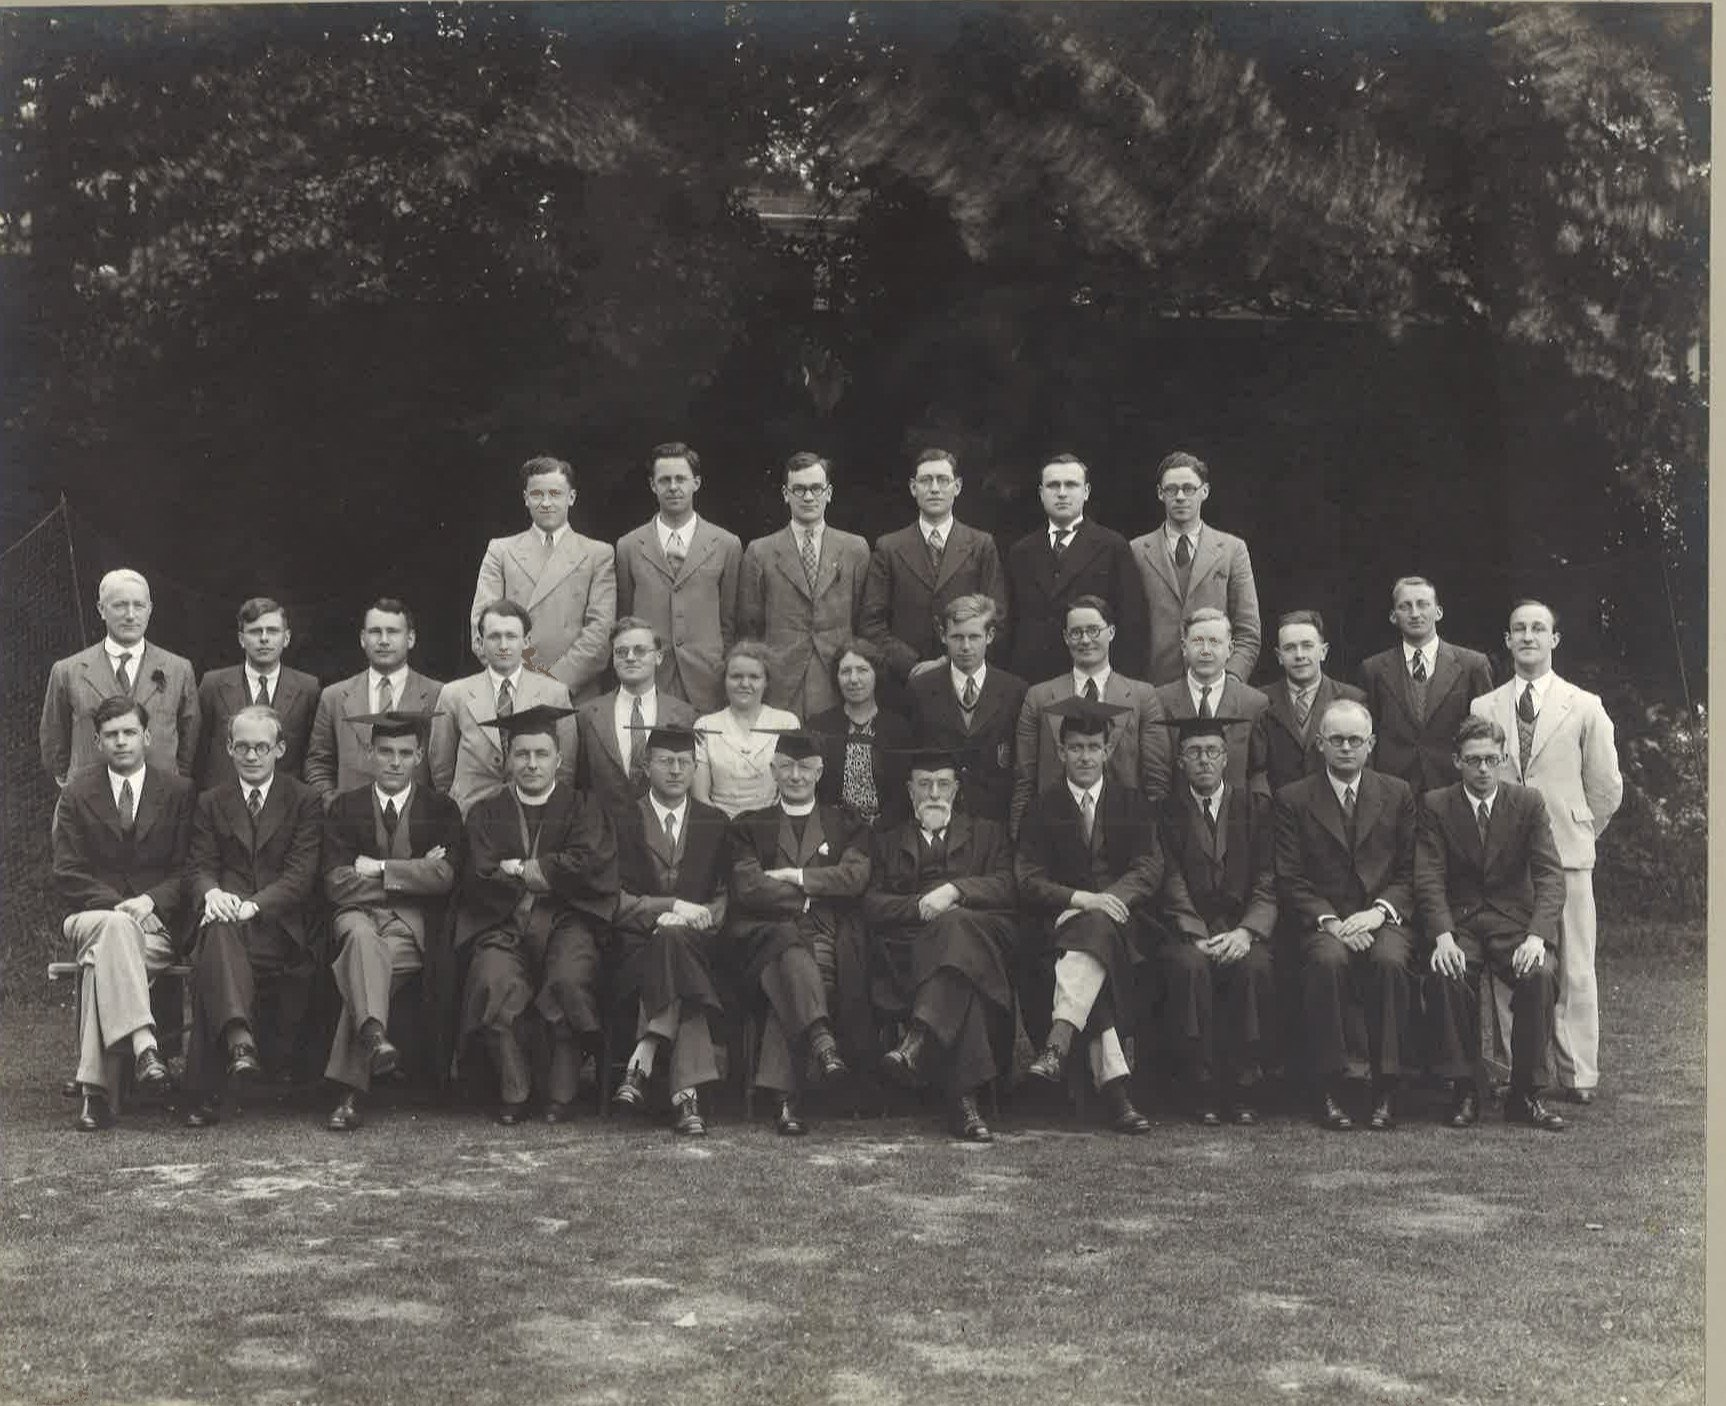 A monochrome College photograph of Mansfield students in 1939. There are two women in the large group of men. The front row is mainly academics wearing mortar boards, the rest wear suits.